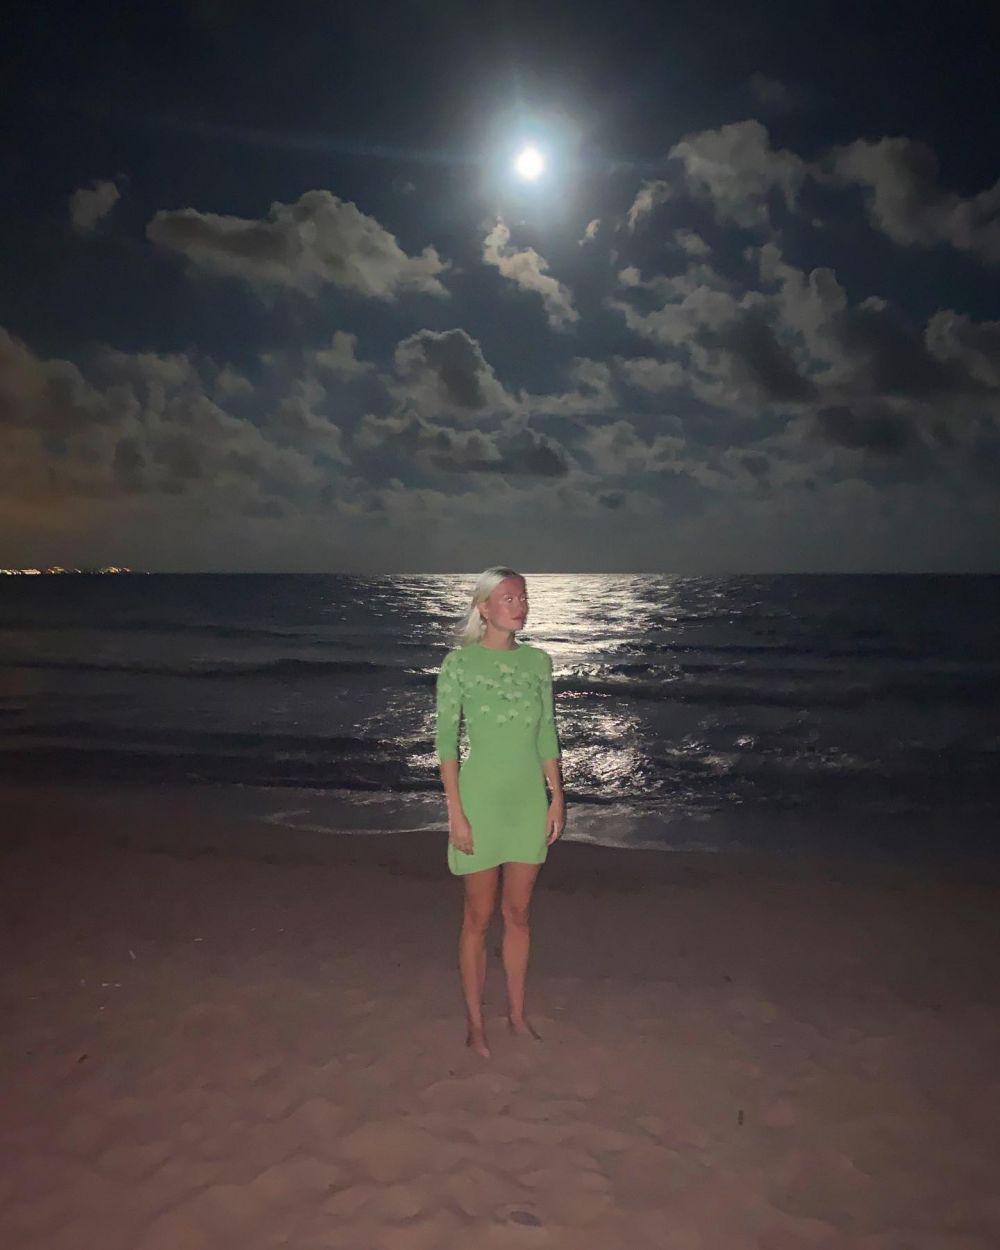 🌙☁️☁️☁️ Under the moon ~ Wearing the knitted Camilla dress. 🍏